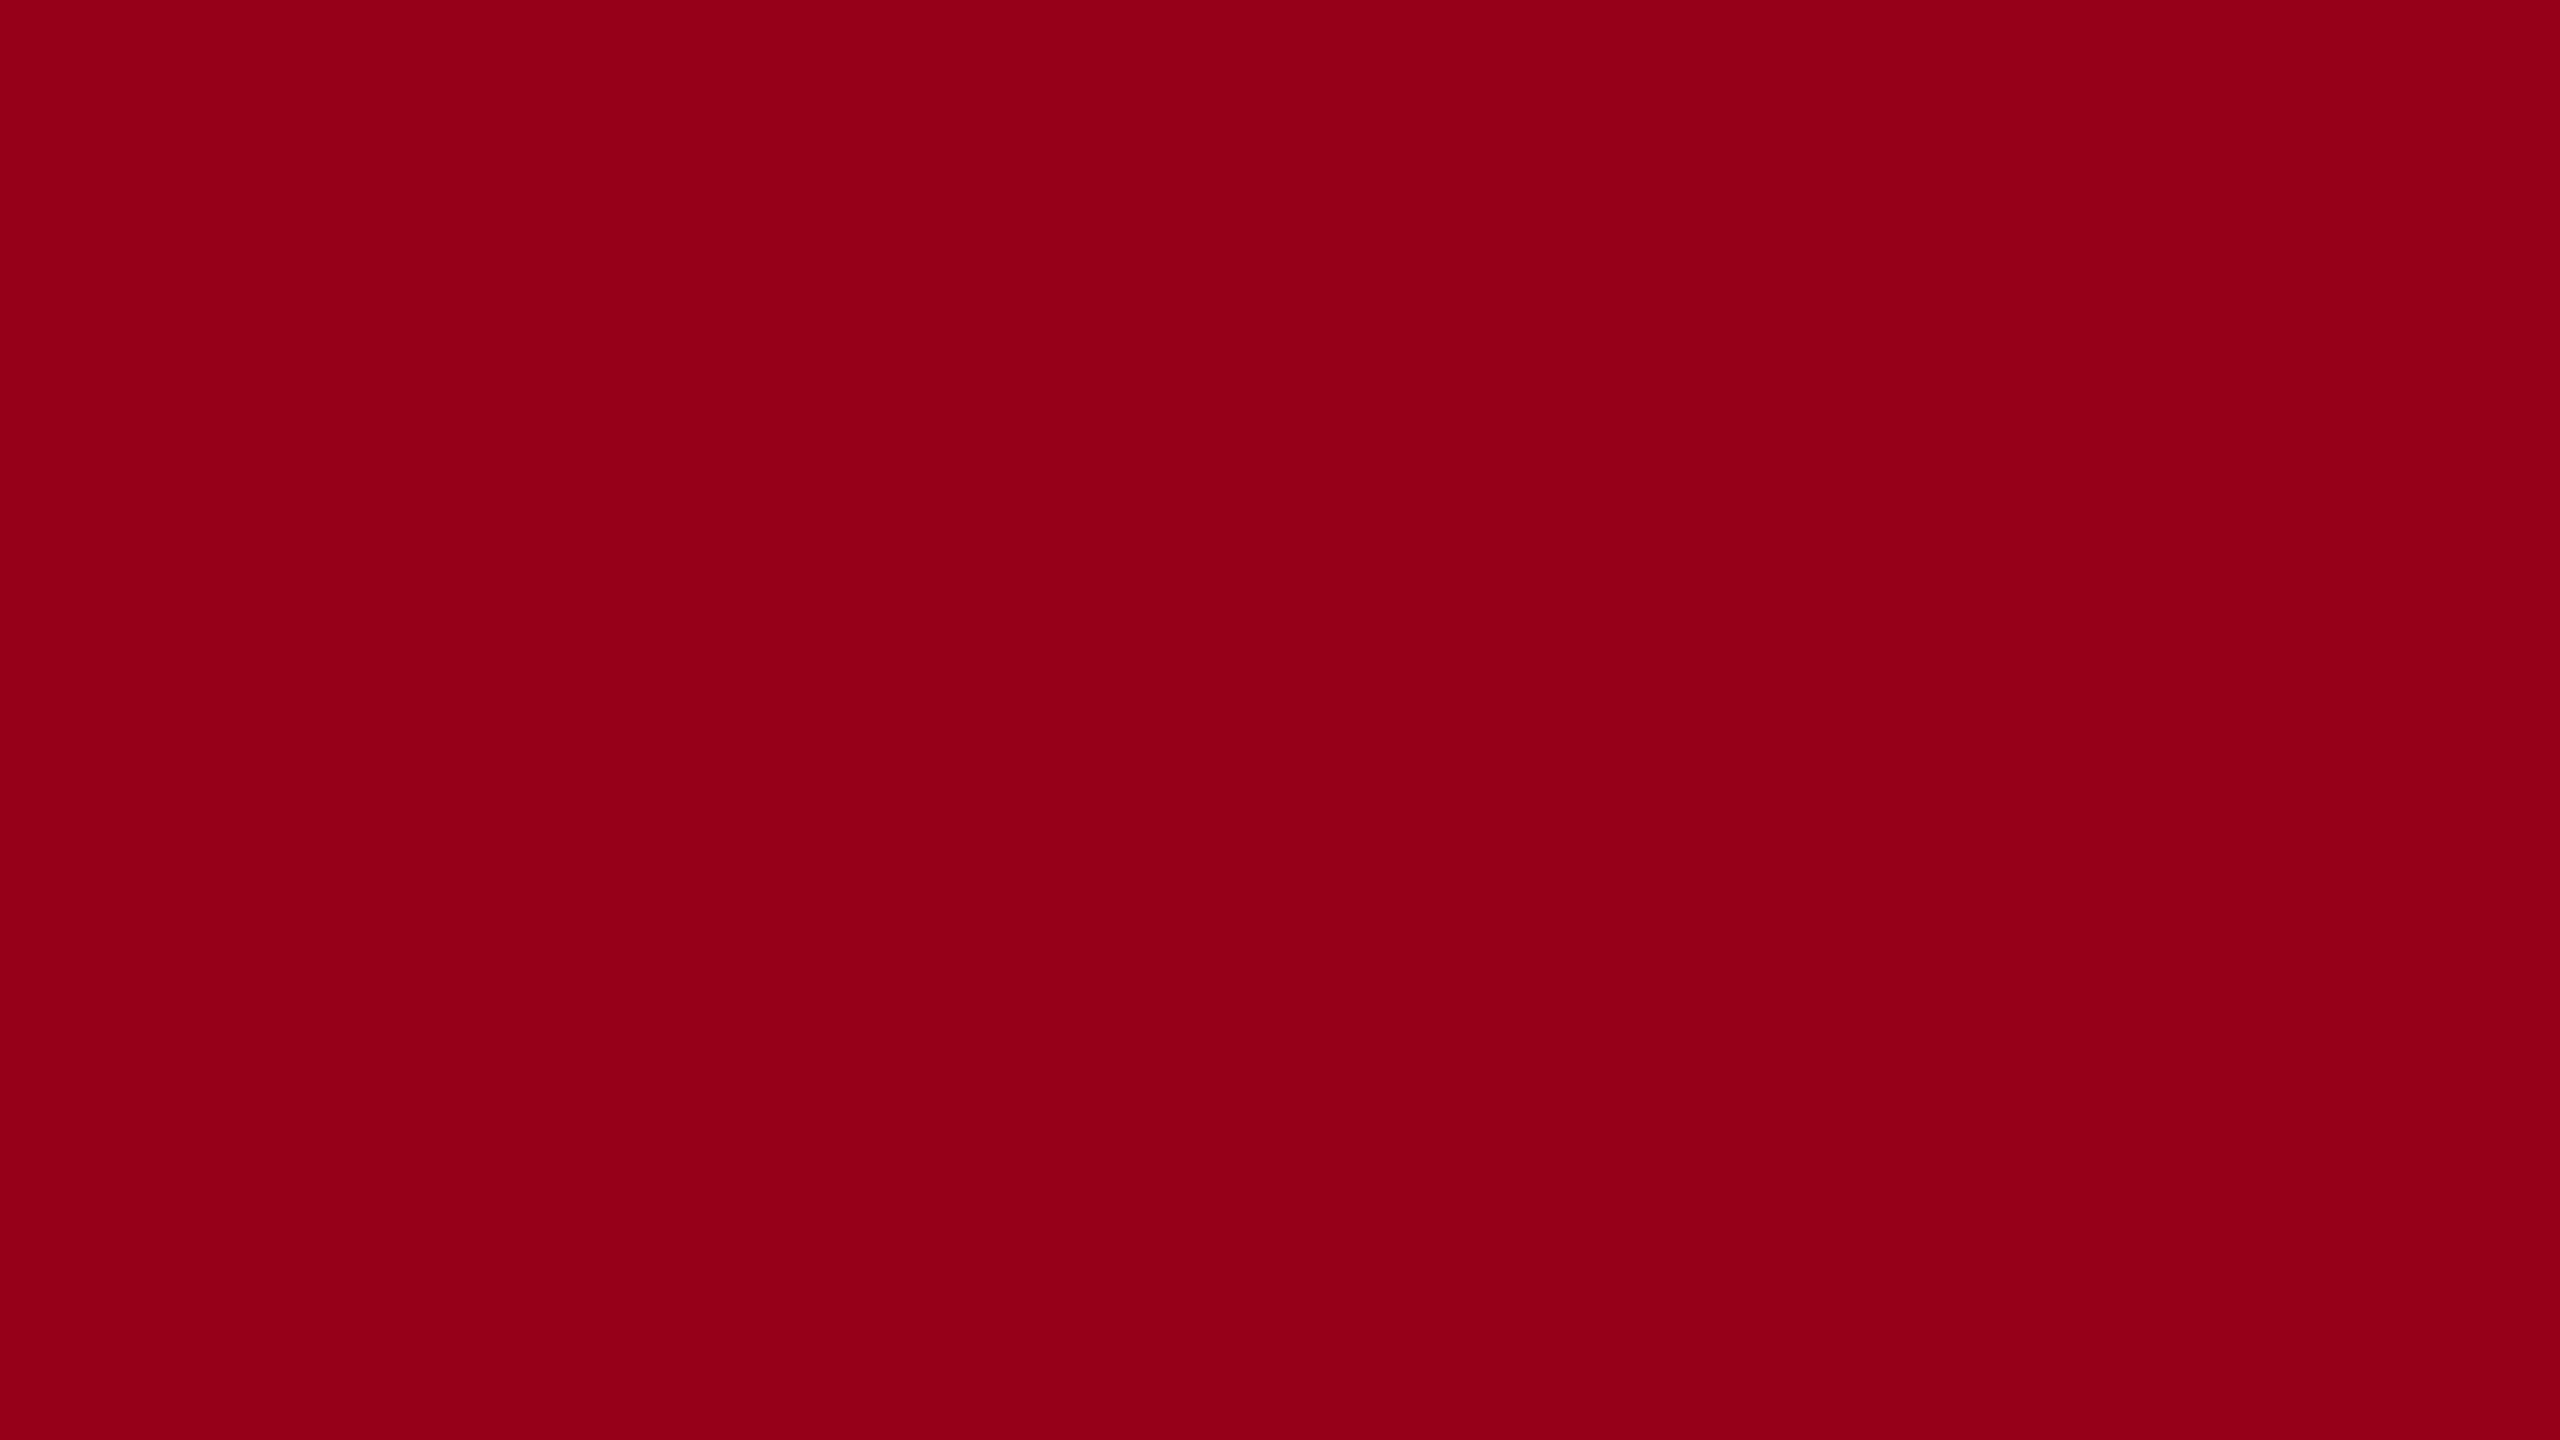 2560x1440 Carmine Solid Color Background